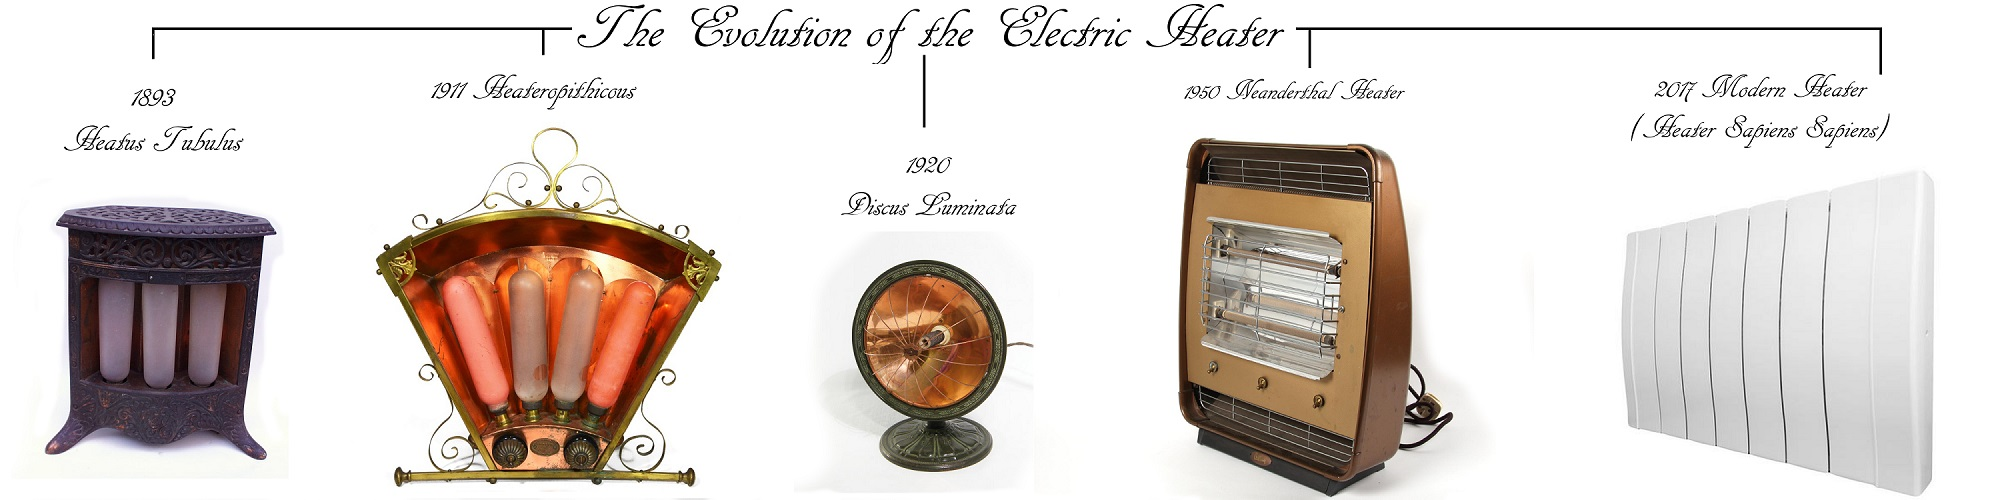 Evolution of the electric heater